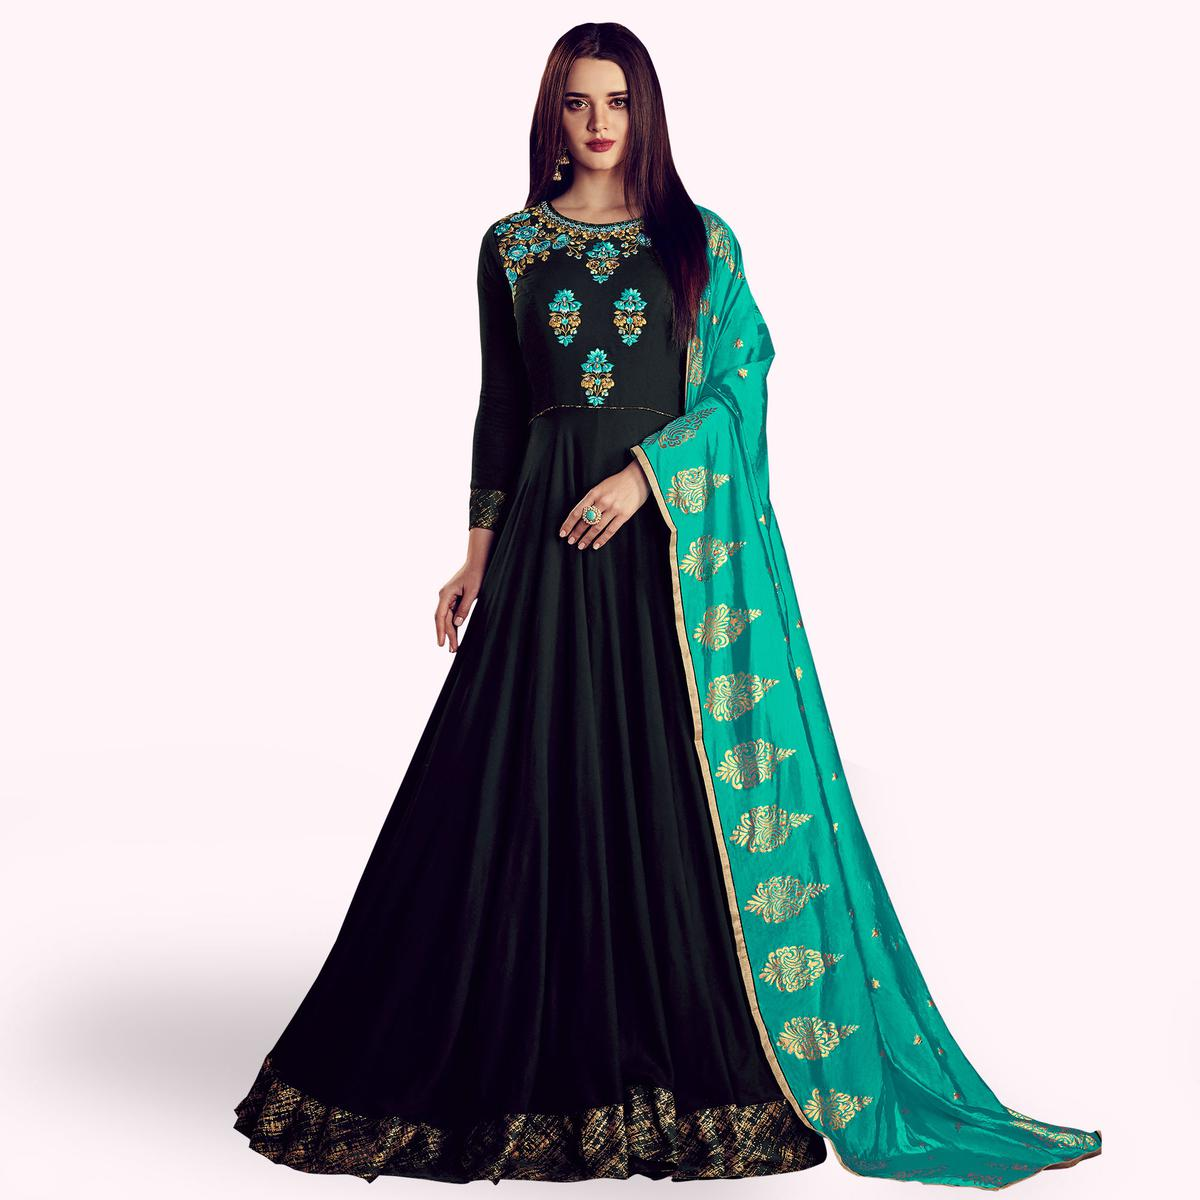 Capricious Black Colored Partywear Embroidered Rayon Anarkali